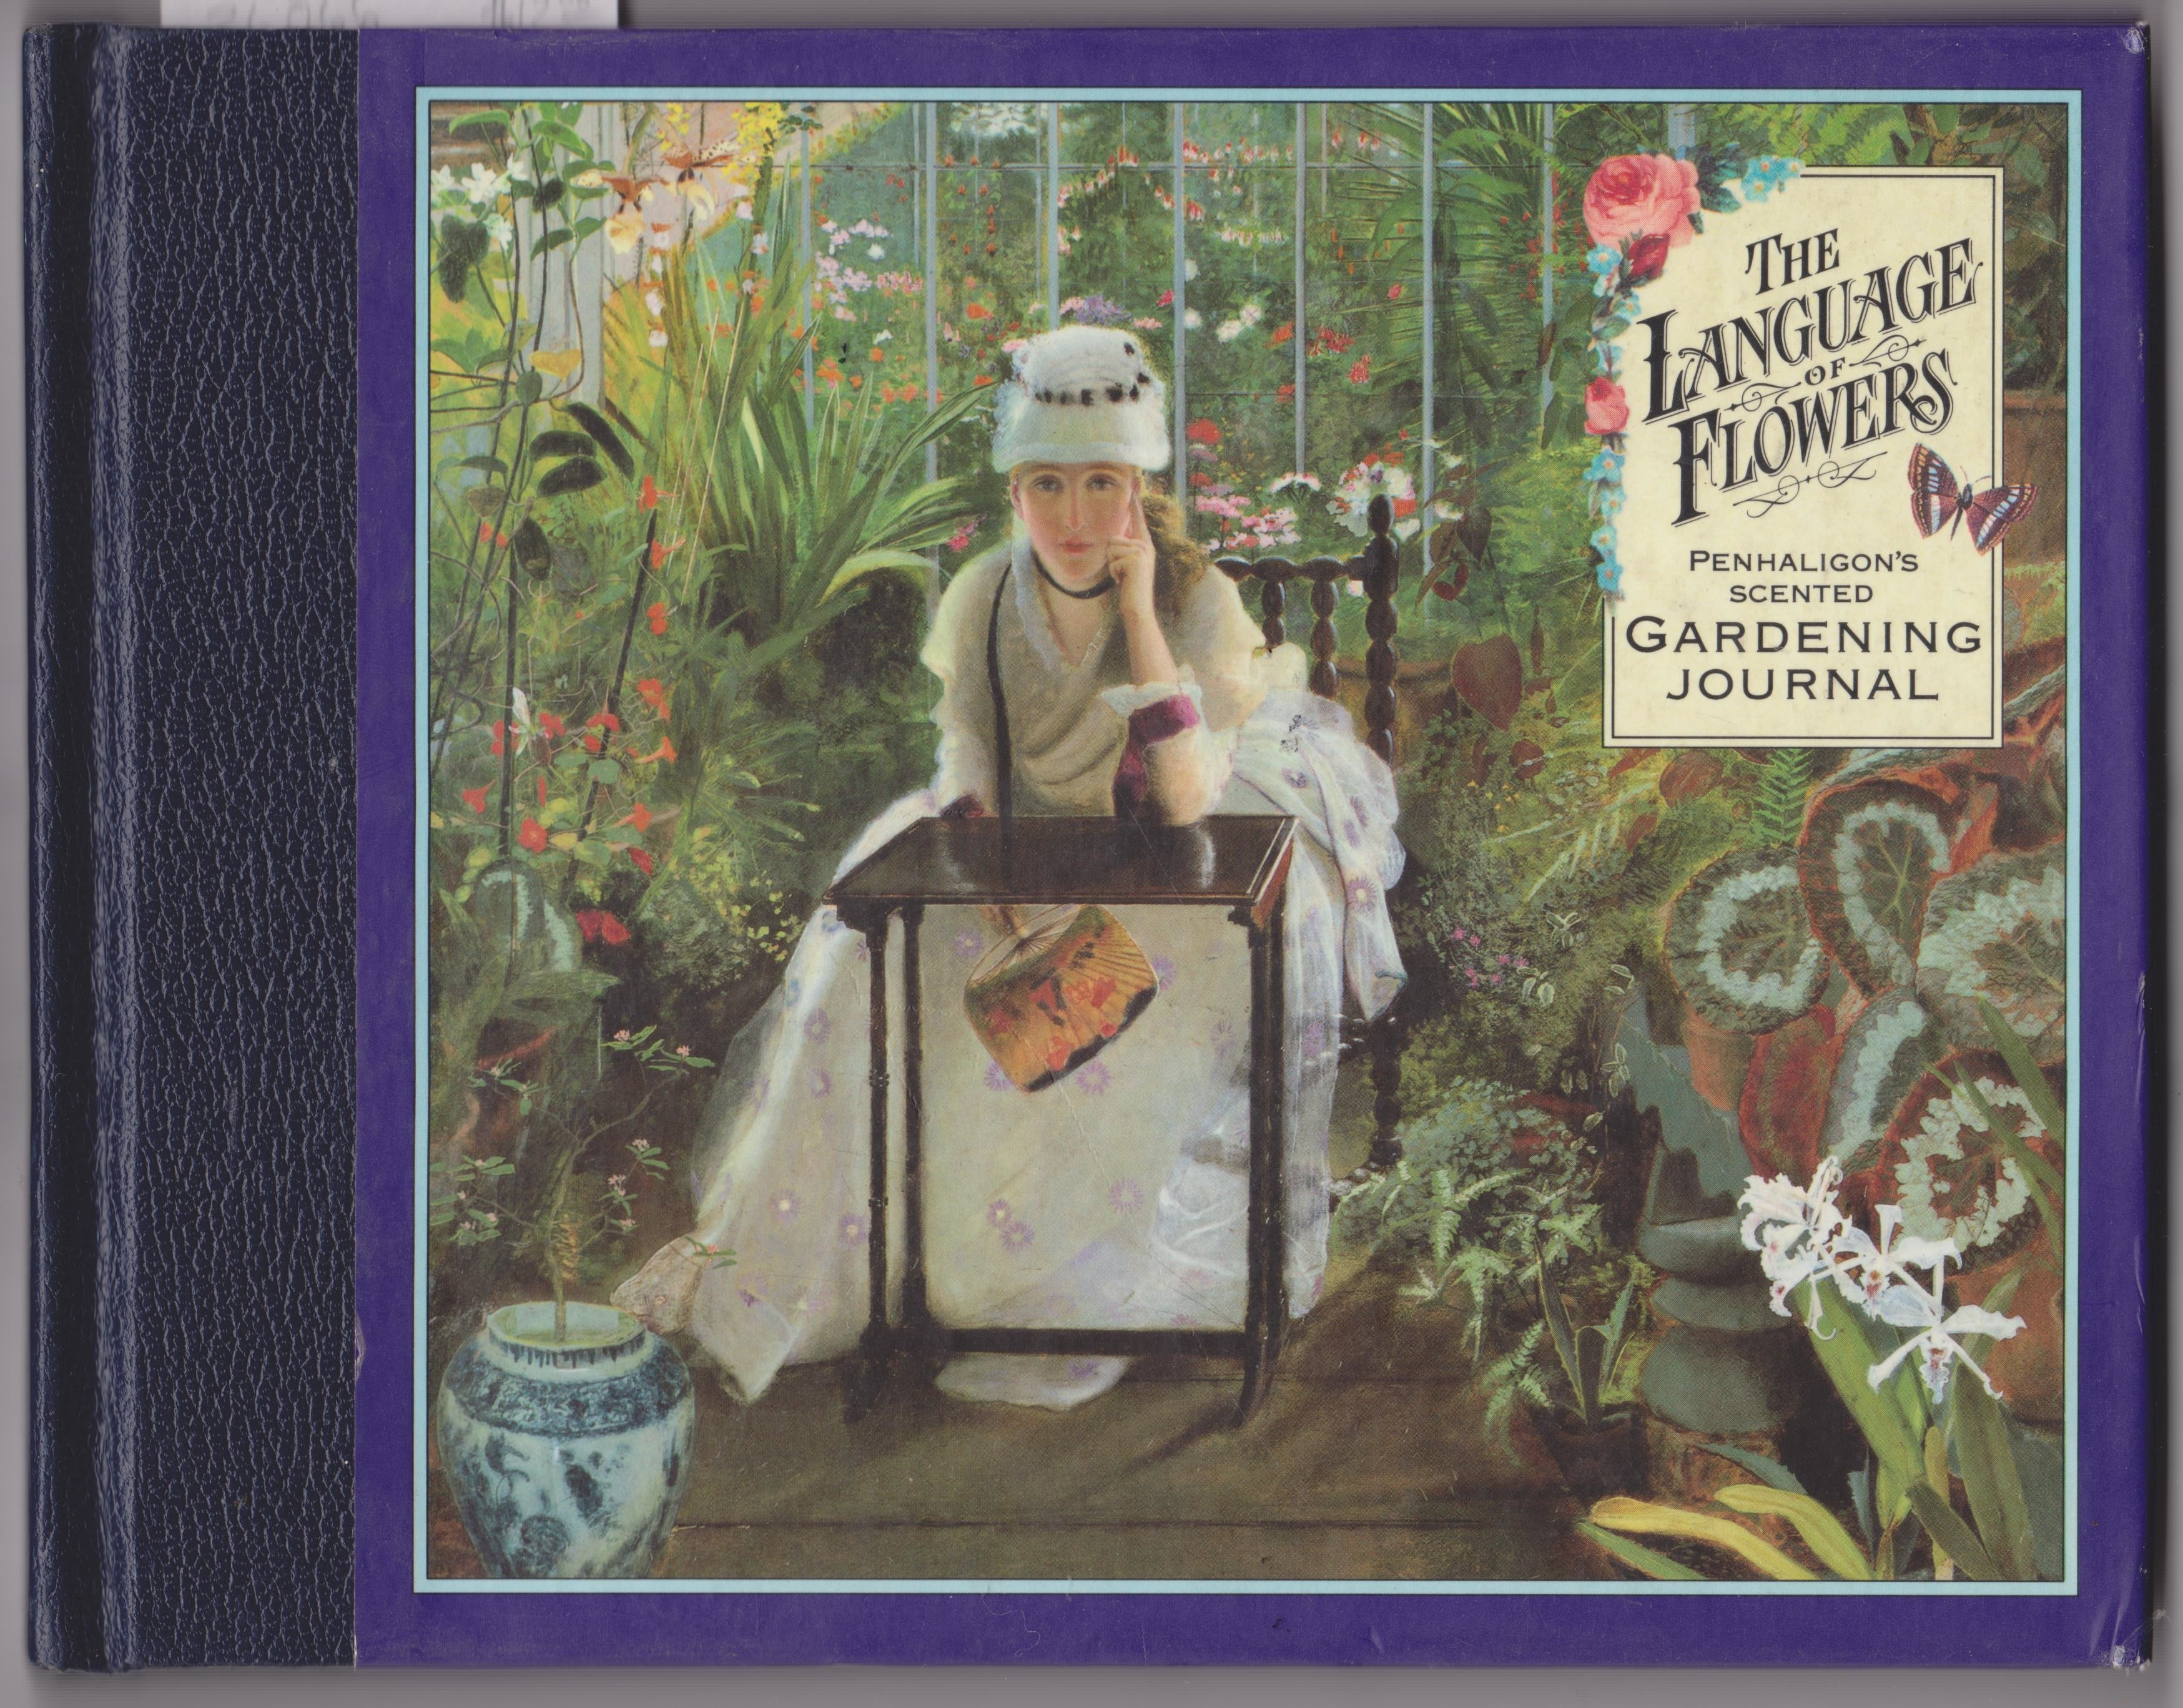 The Language of Flowers, Penhaligon's scented Gardening Journal, Pickles, Sheila